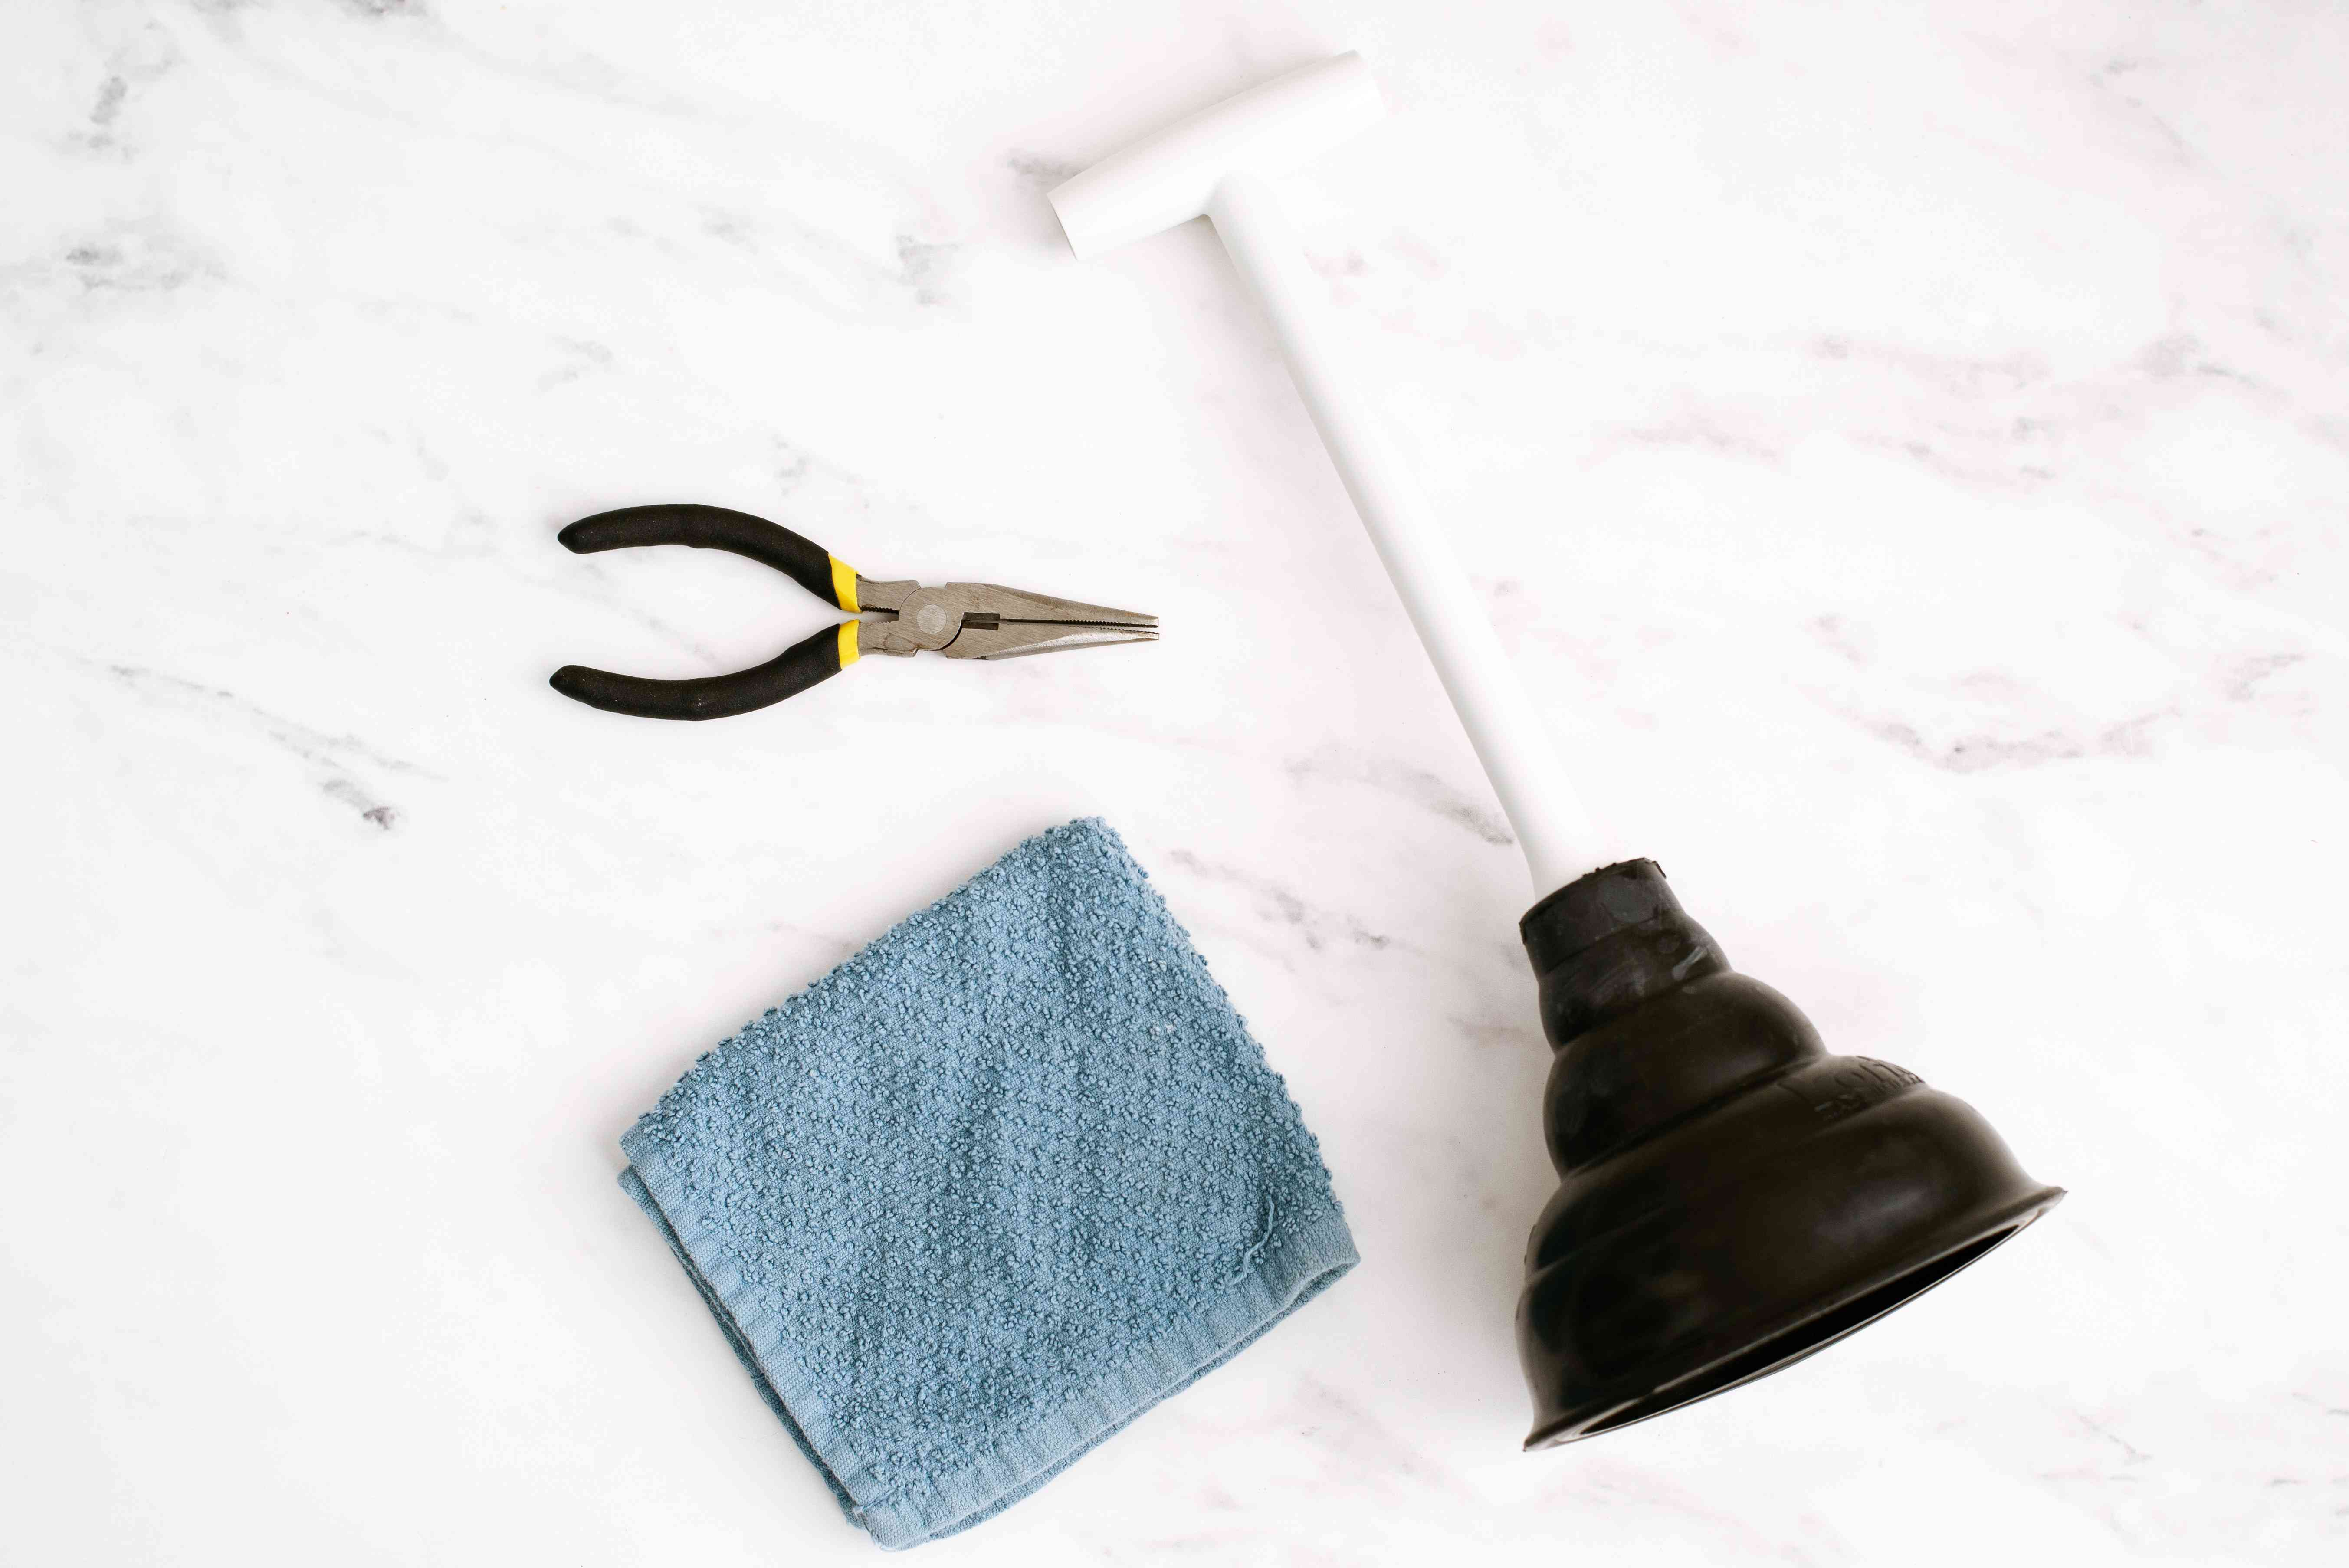 Materials and tools to unclog a sink drain